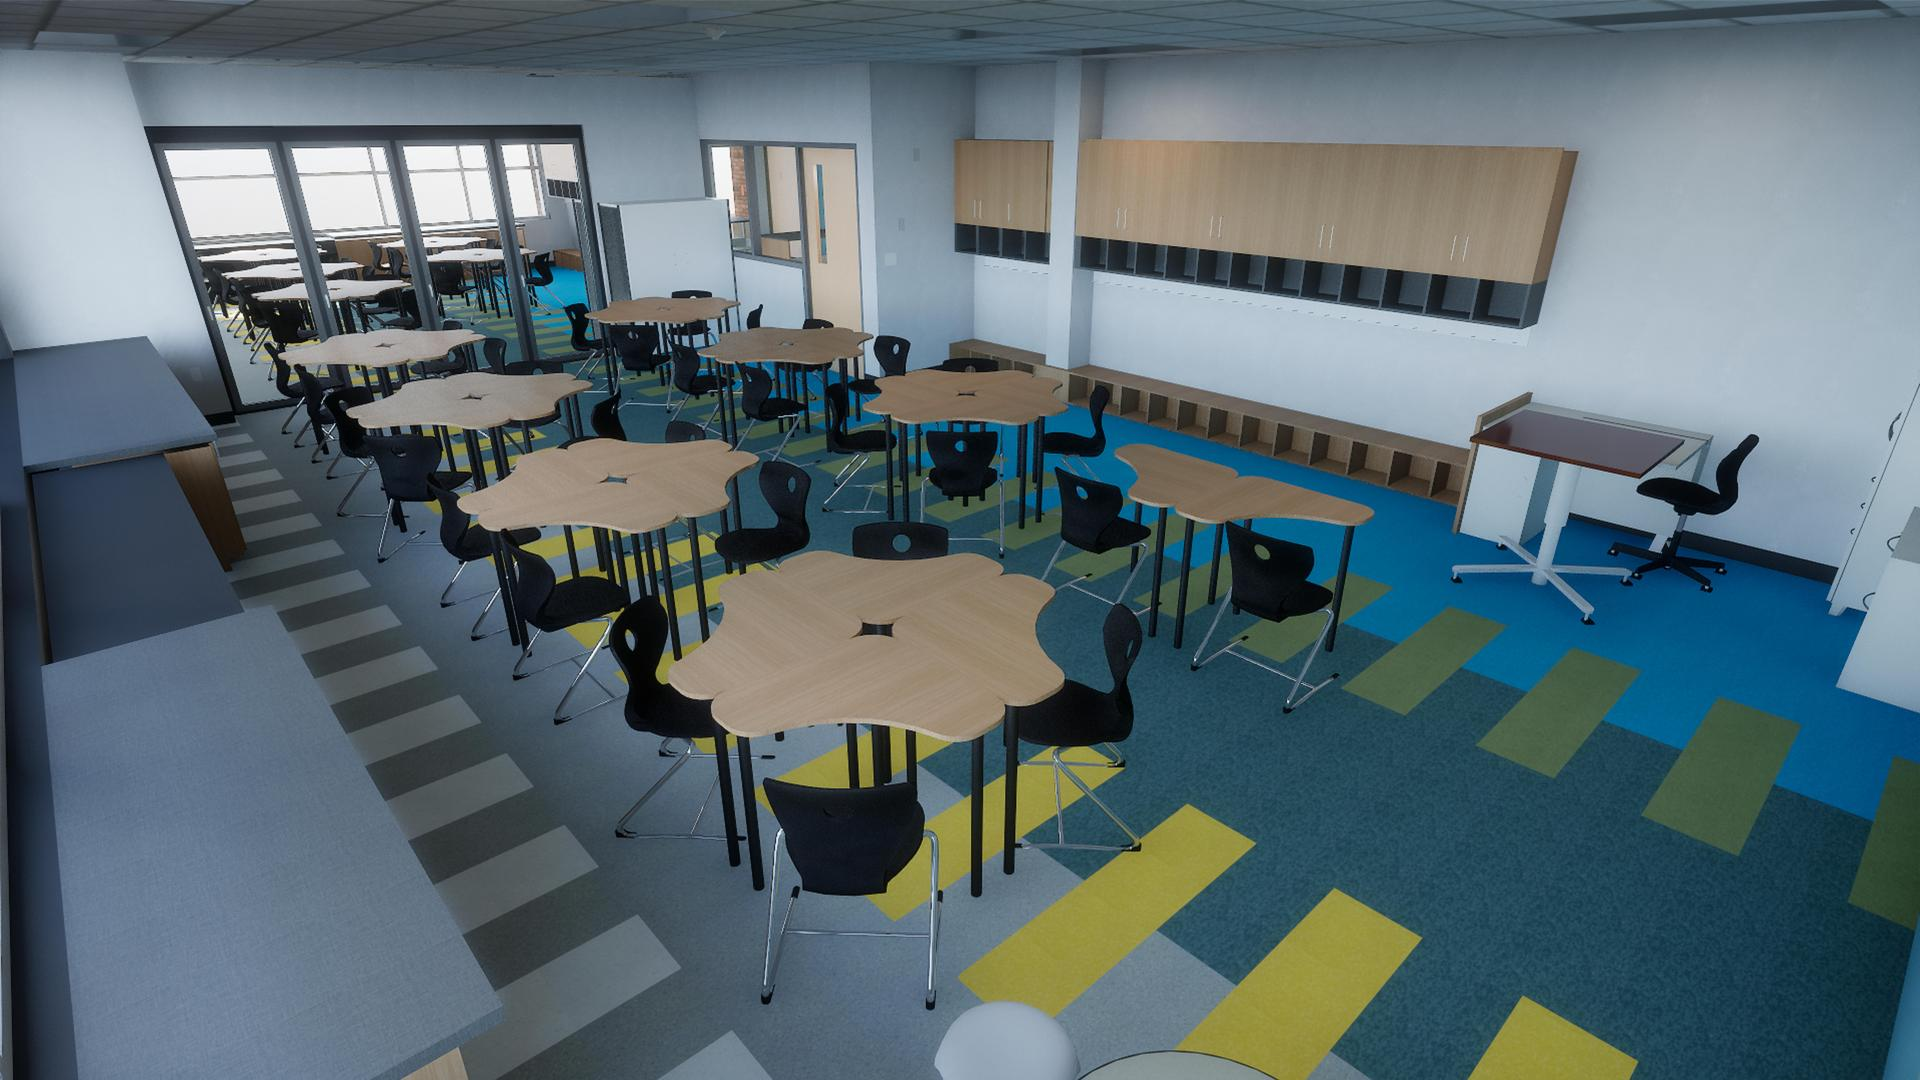 Concept photo of Classroom (back view)